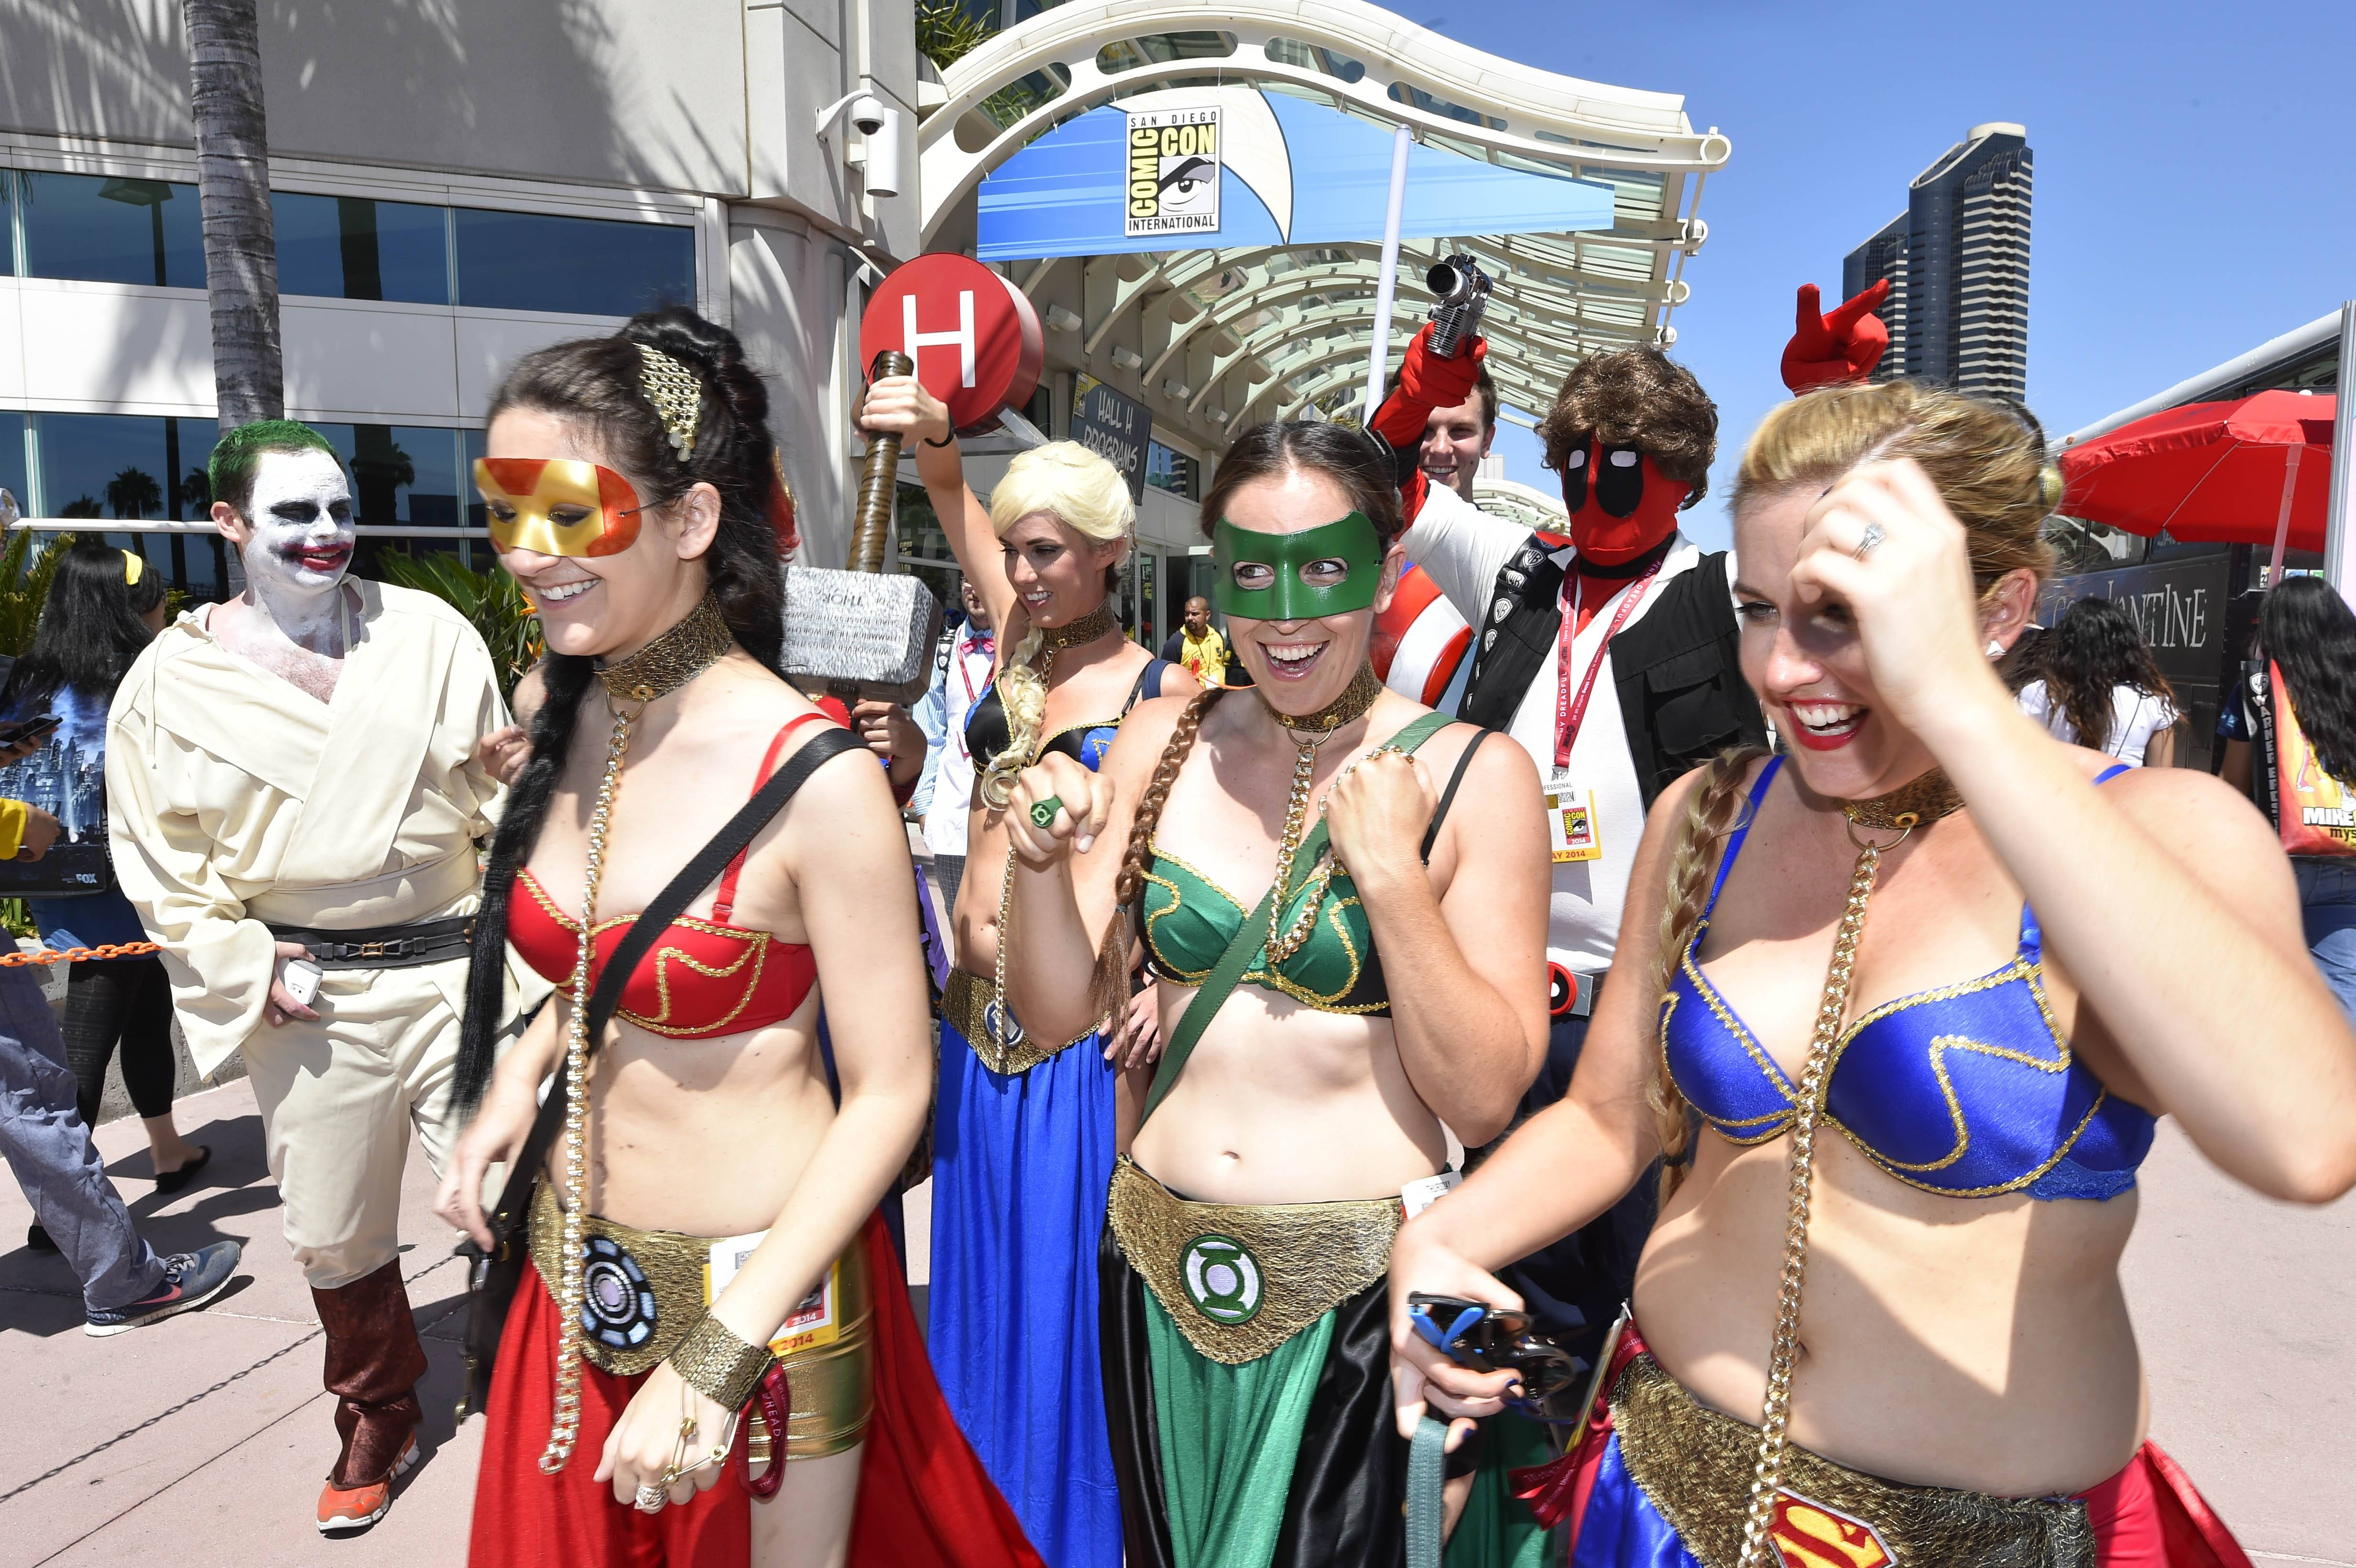 Costumed characters walk outside of the convention center on day 1 of the 2014 Comic-Con International Convention Thursday. Geeks for CONsent, founded by three women from Philadelphia, gathered nearly 2,600 signatures on an online petition supporting a formal anti-harassment policy at Comic-Con.